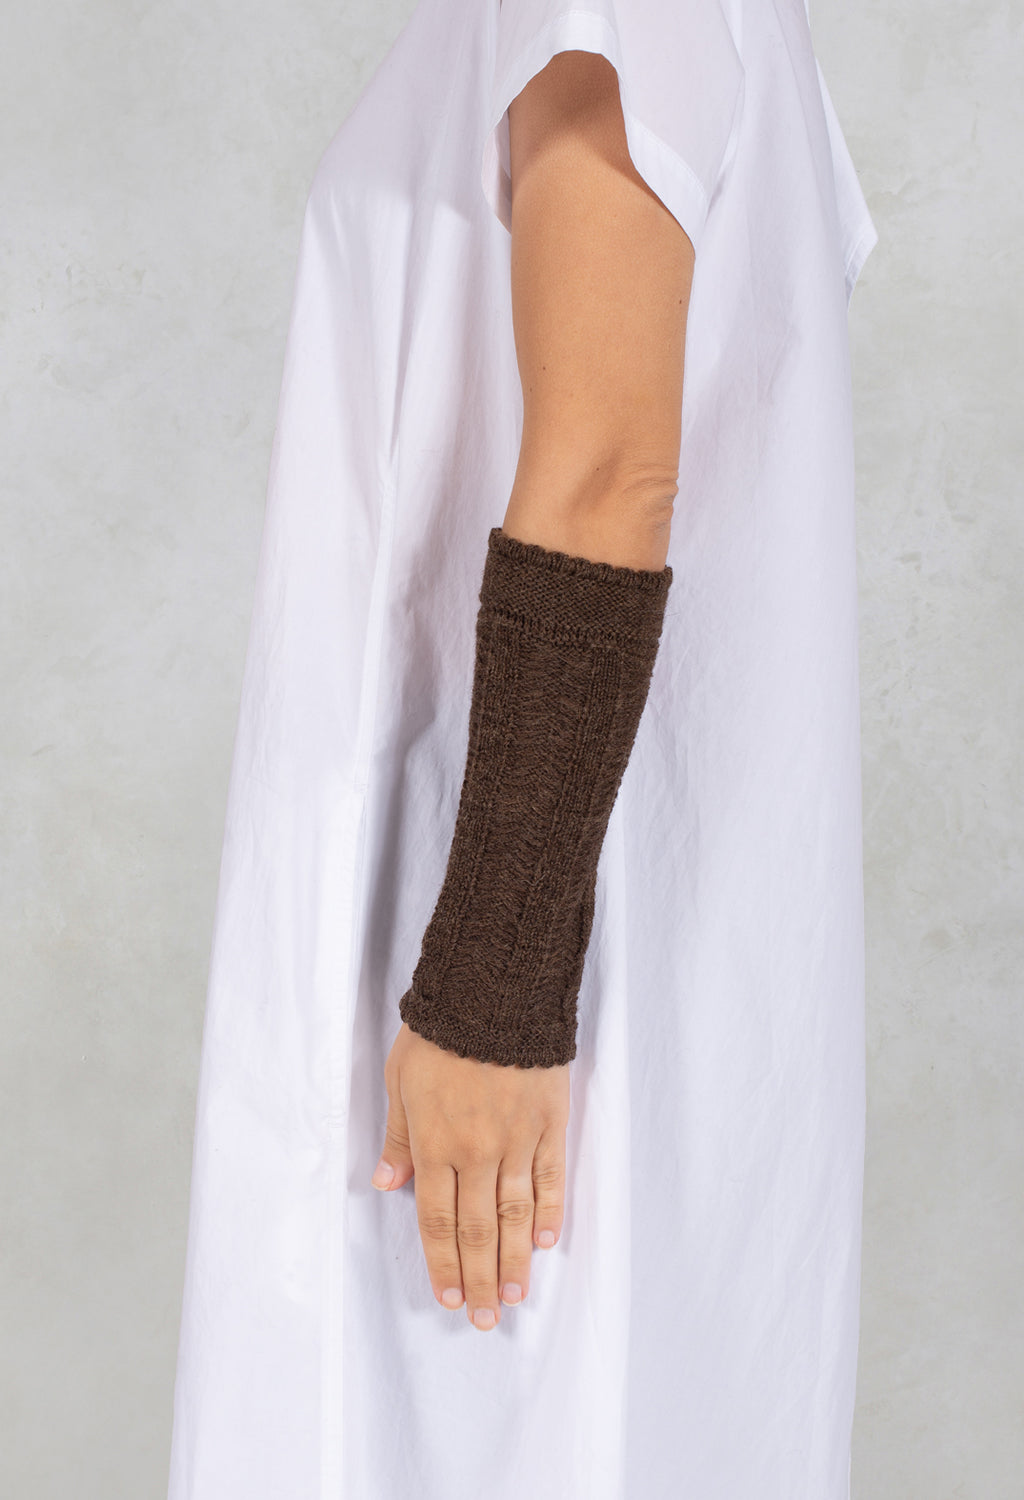 Merino Alpaca Wrist Detail in Brown